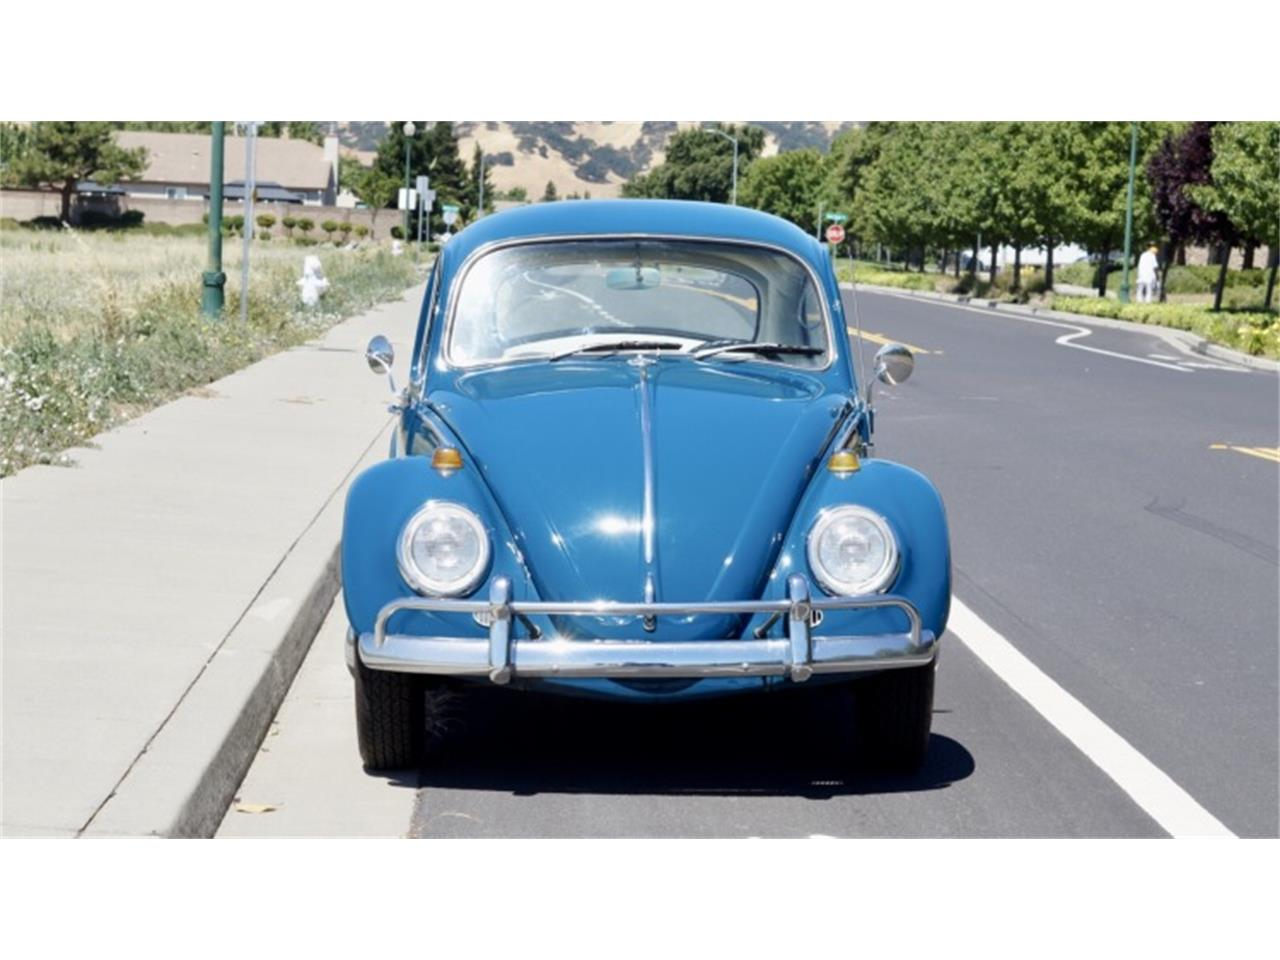 Large Picture of Classic '65 Beetle located in Sparks Nevada Auction Vehicle Offered by Motorsport Auction Group - QPEN